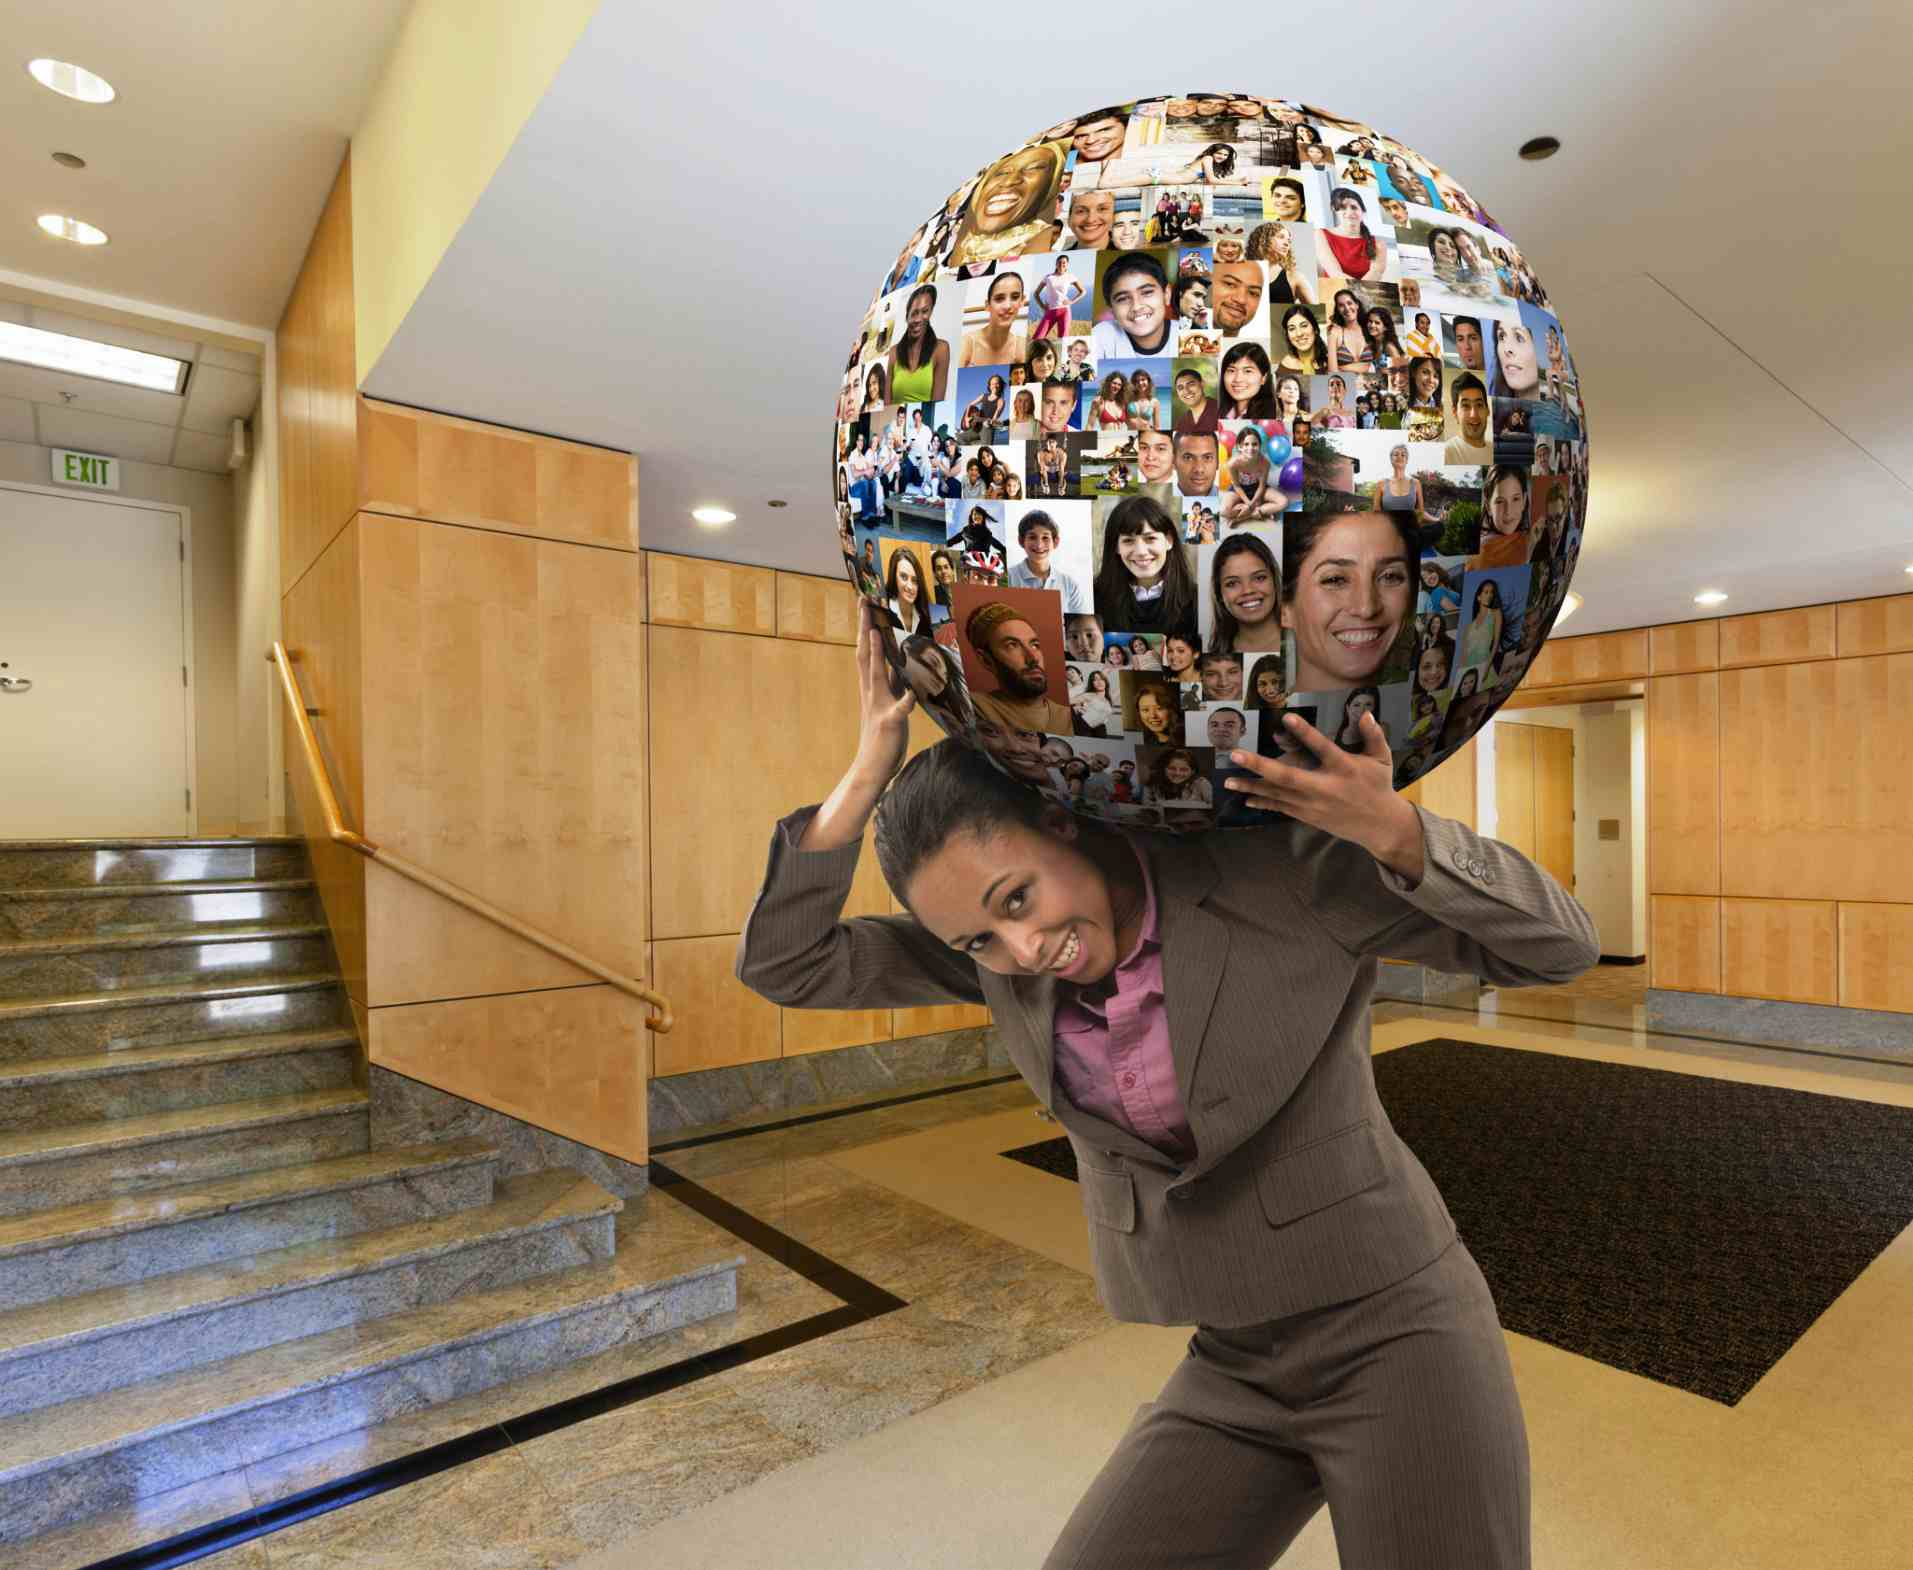 Businesswoman carrying a globe covered in faces on her shoulders